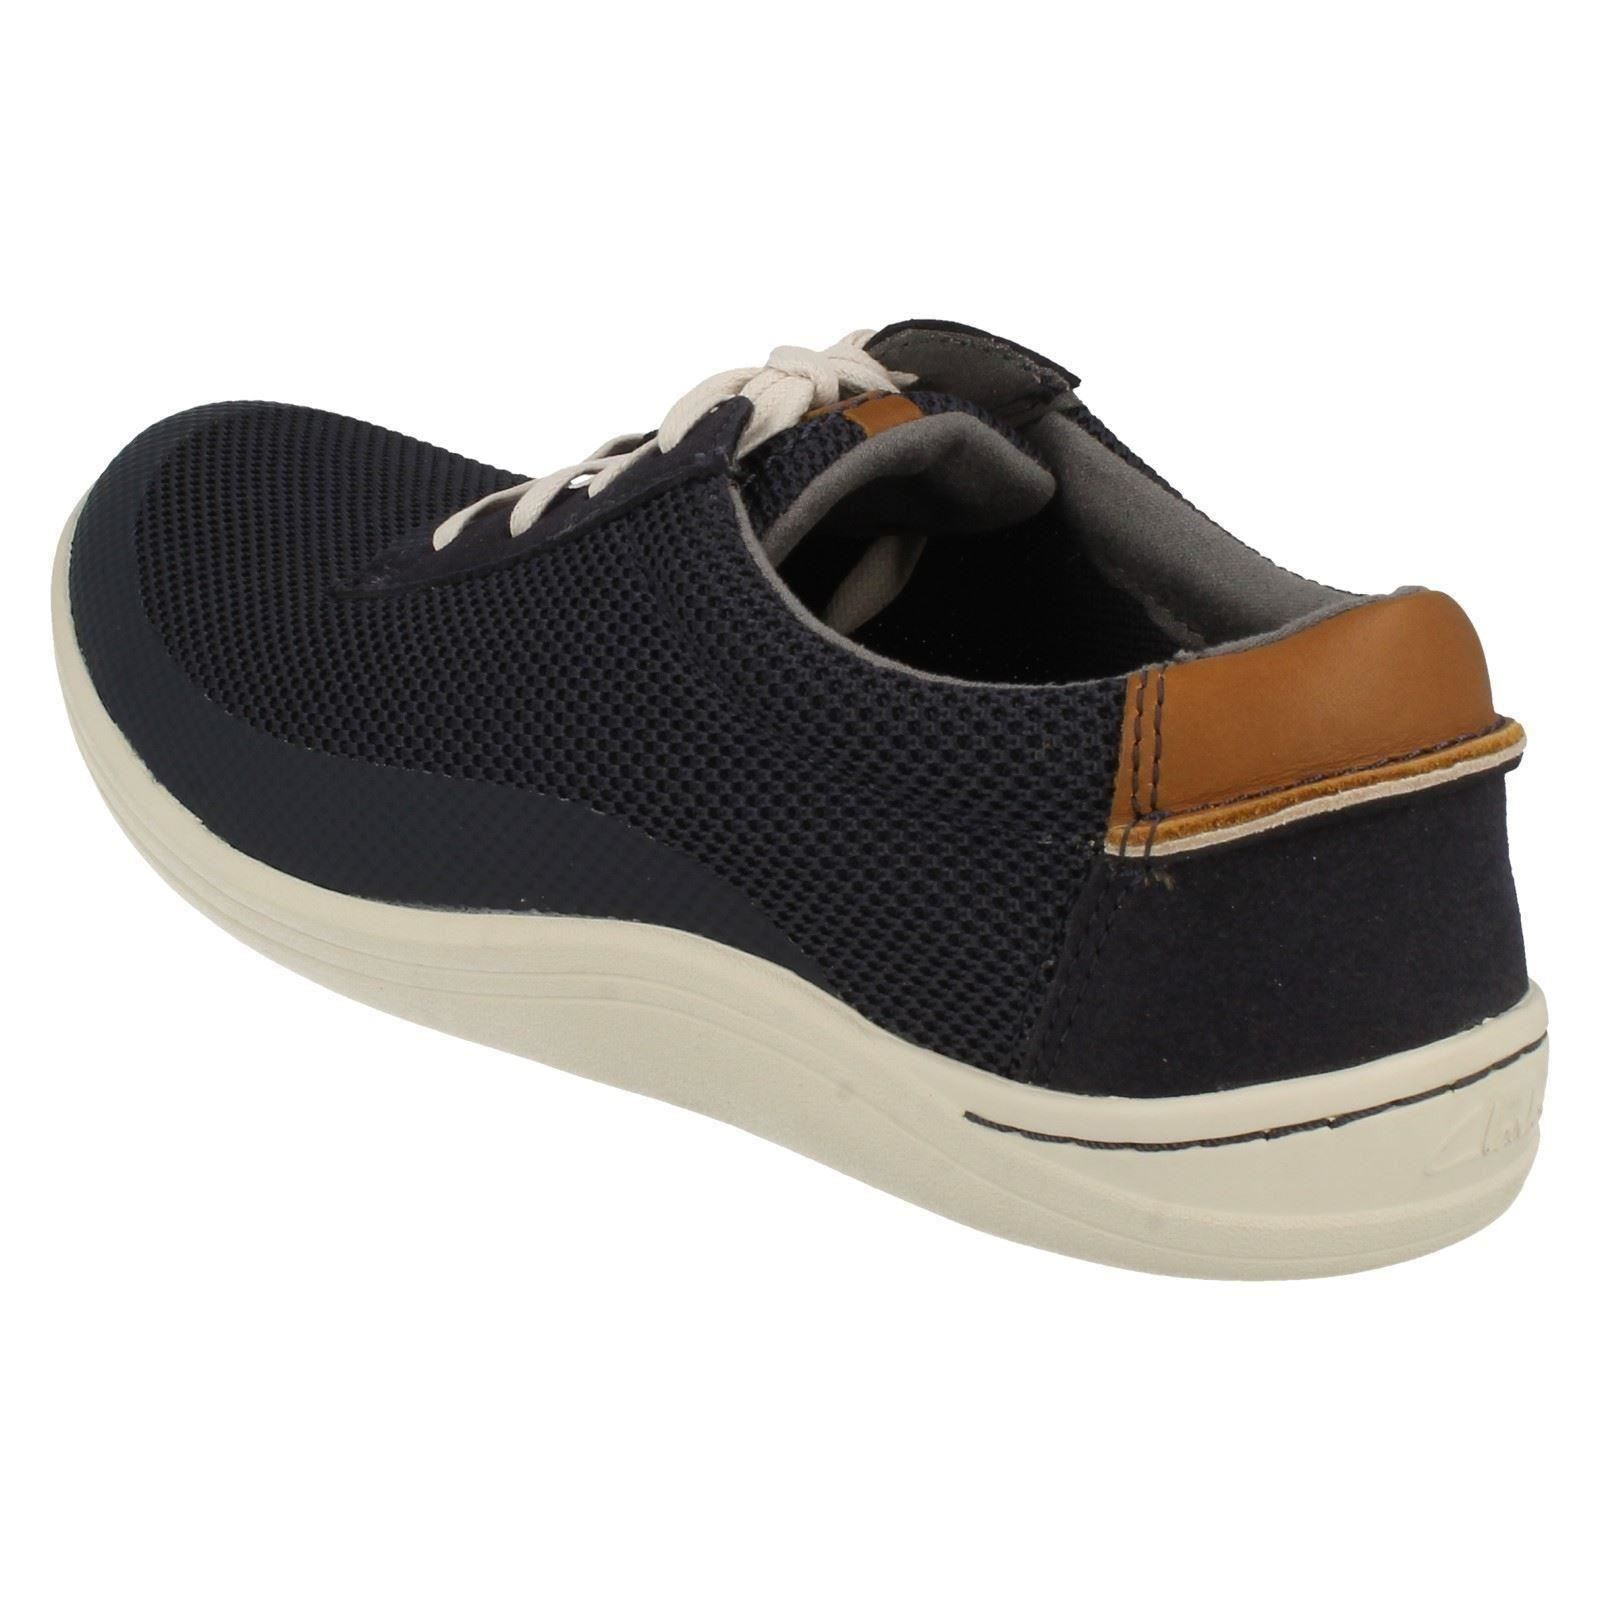 Mens Clarks Casual Lace Up Shoes Mapped Edge